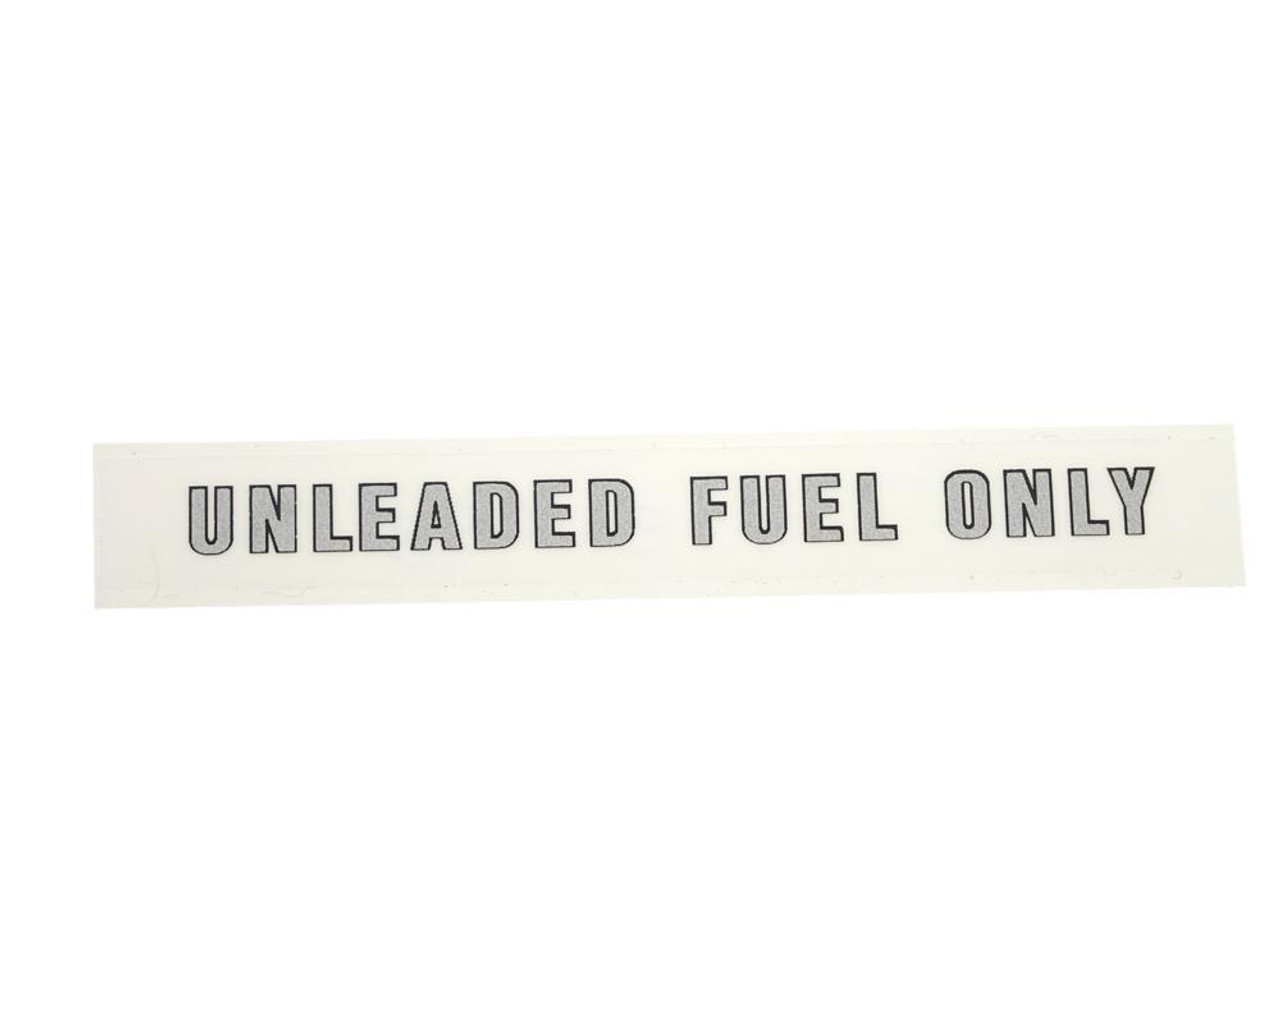 Fuel Decal - UNLEADED FUEL ONLY